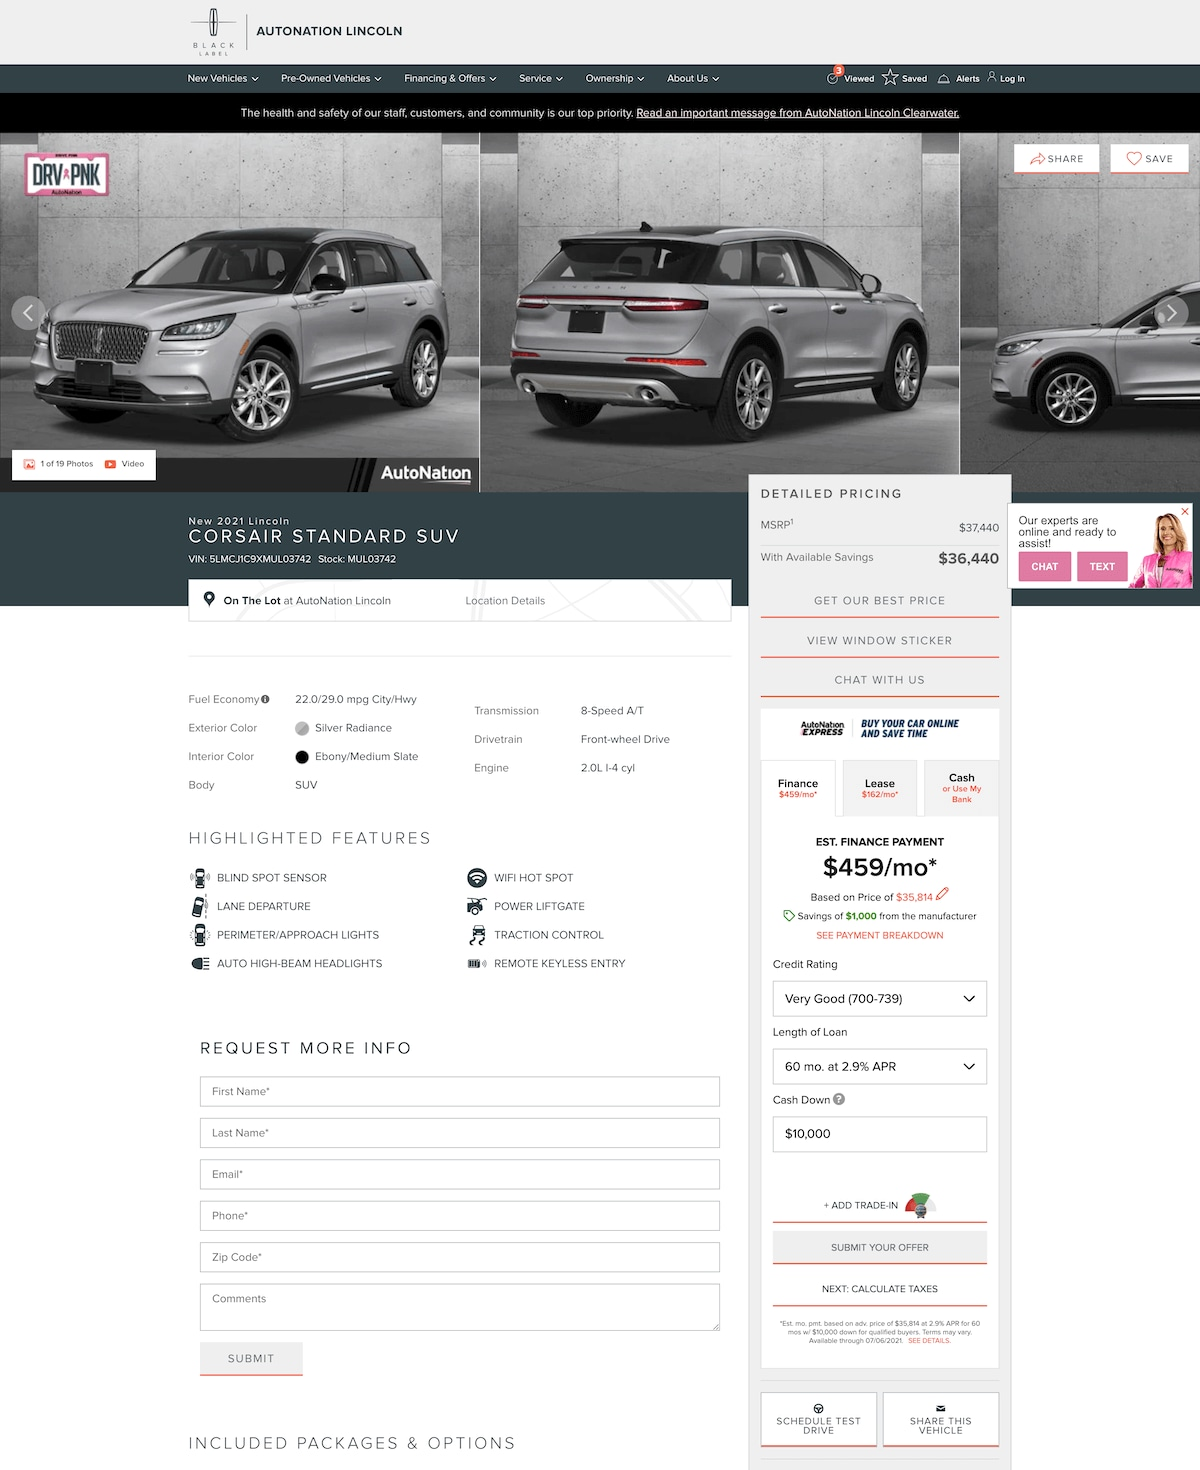 AutoNation Lincoln Clearwater vehicle details page